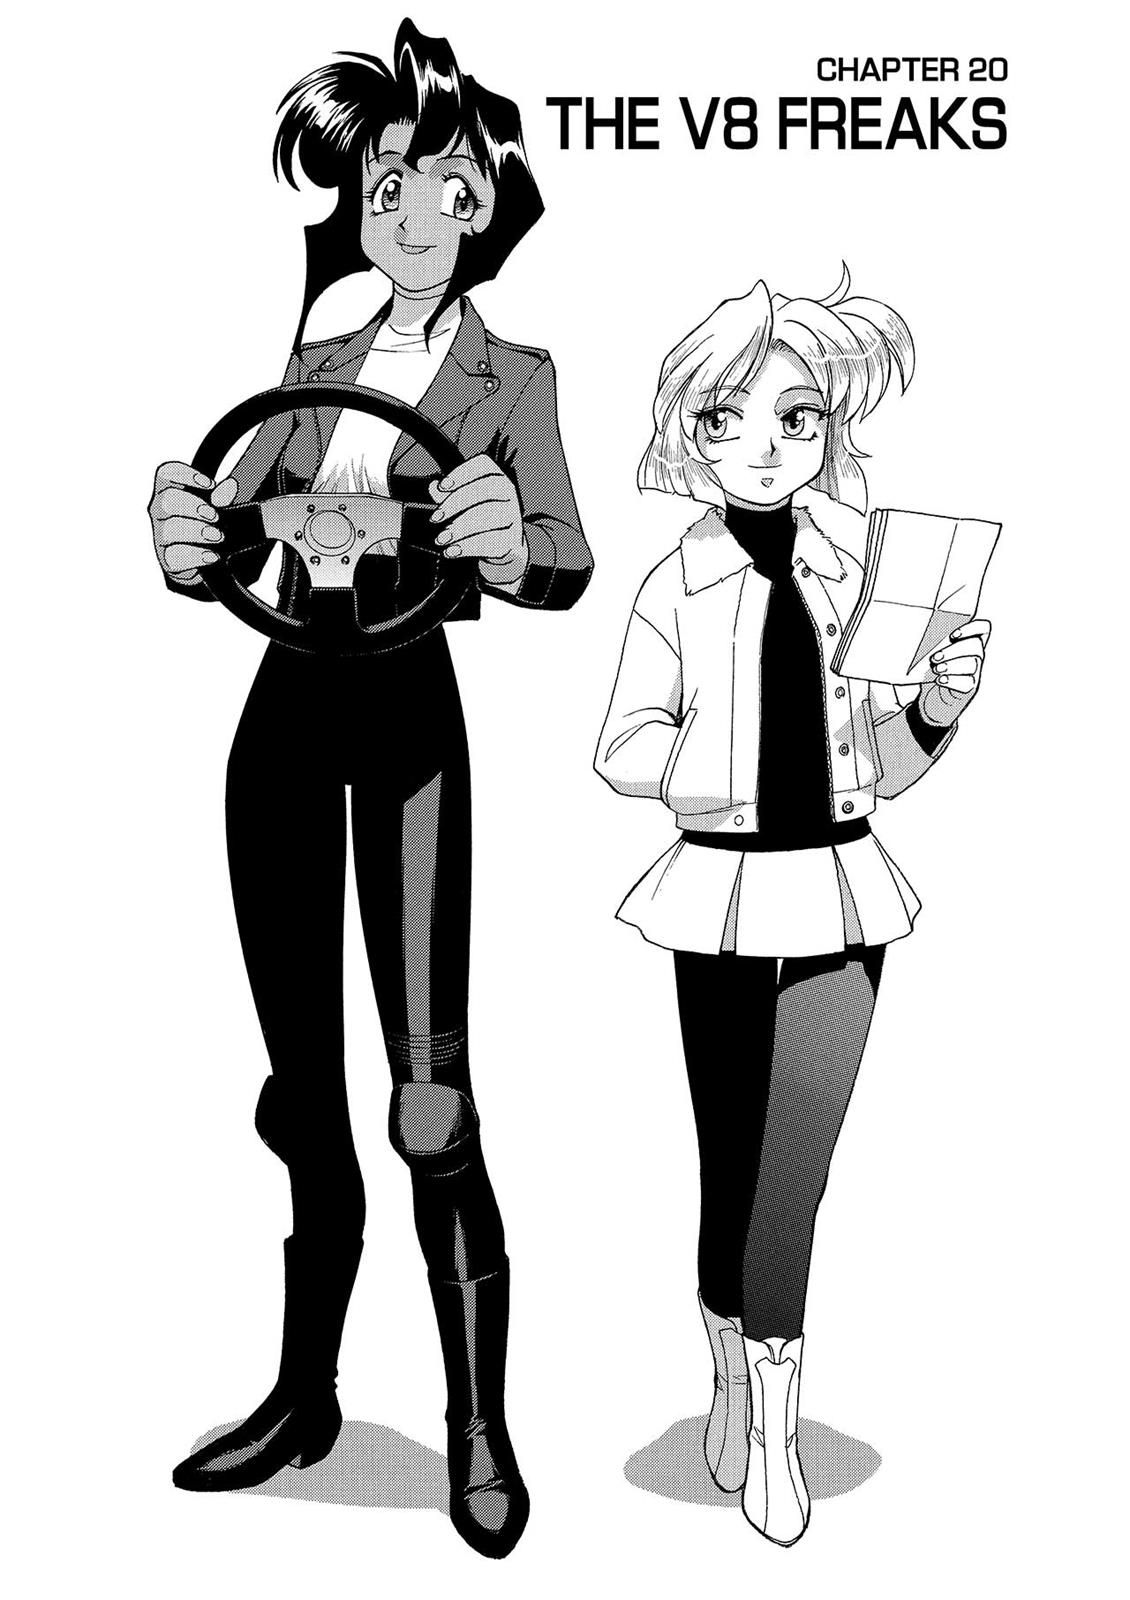 Pin by Gman on gunsmith cats in 2020 Old anime, Anime